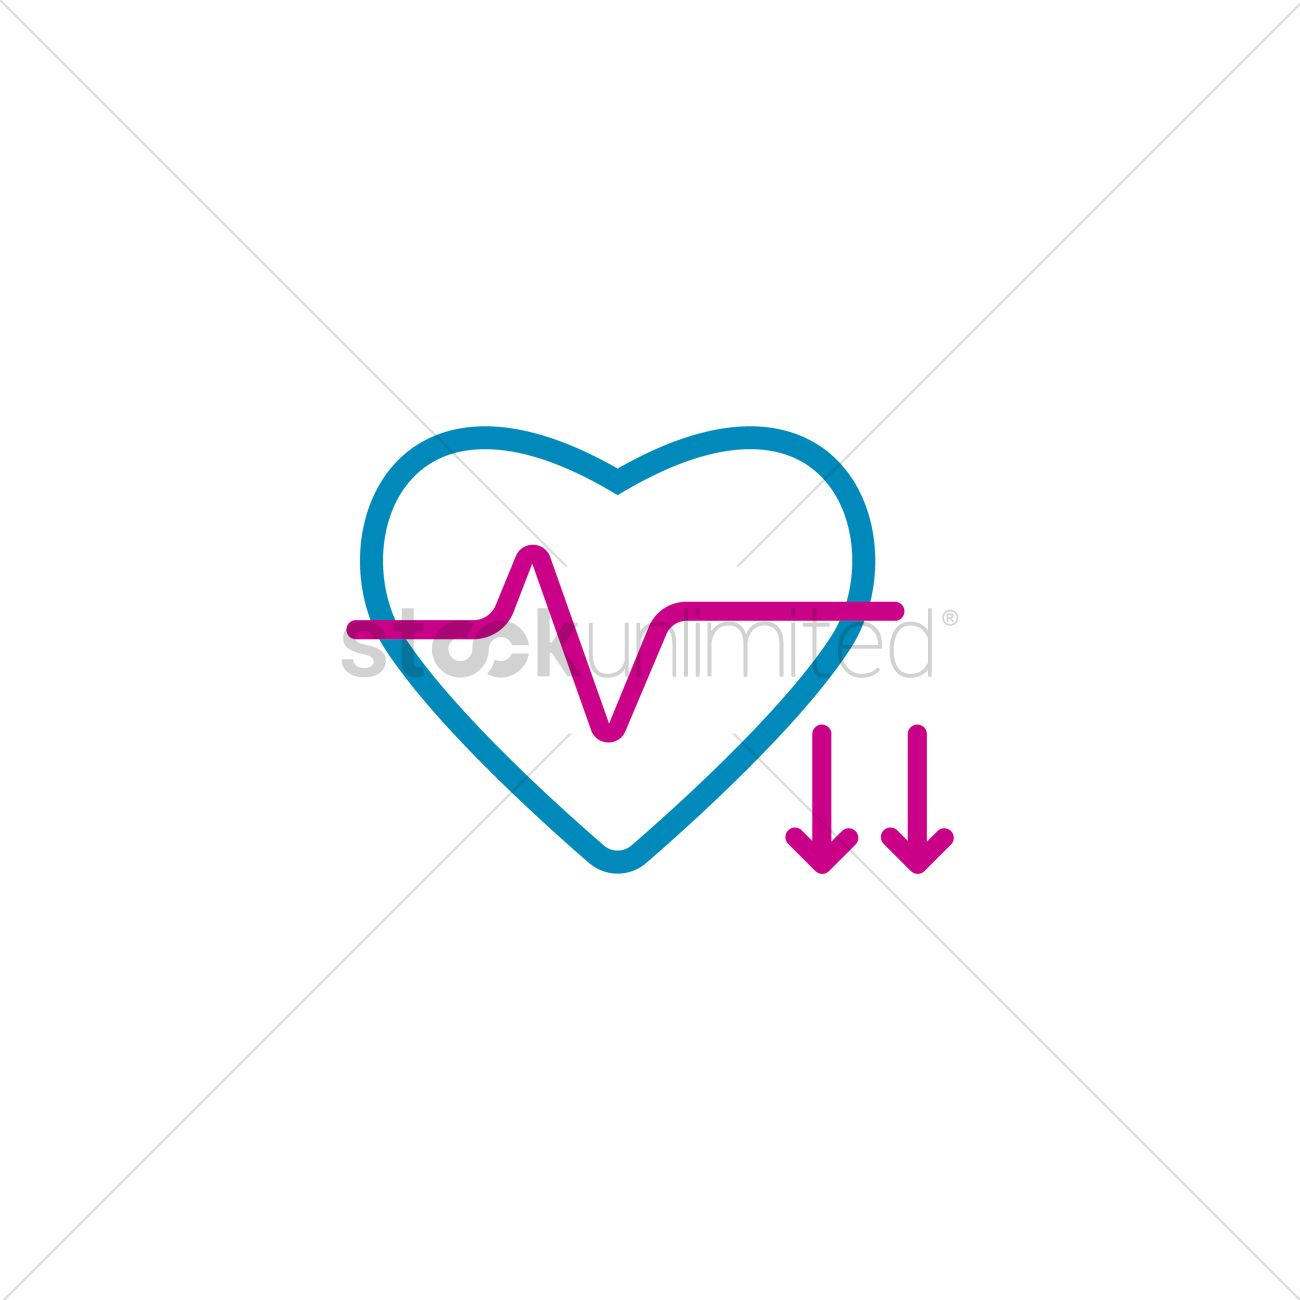 Heart rate decrease Vector Image - 2008789 | StockUnlimited